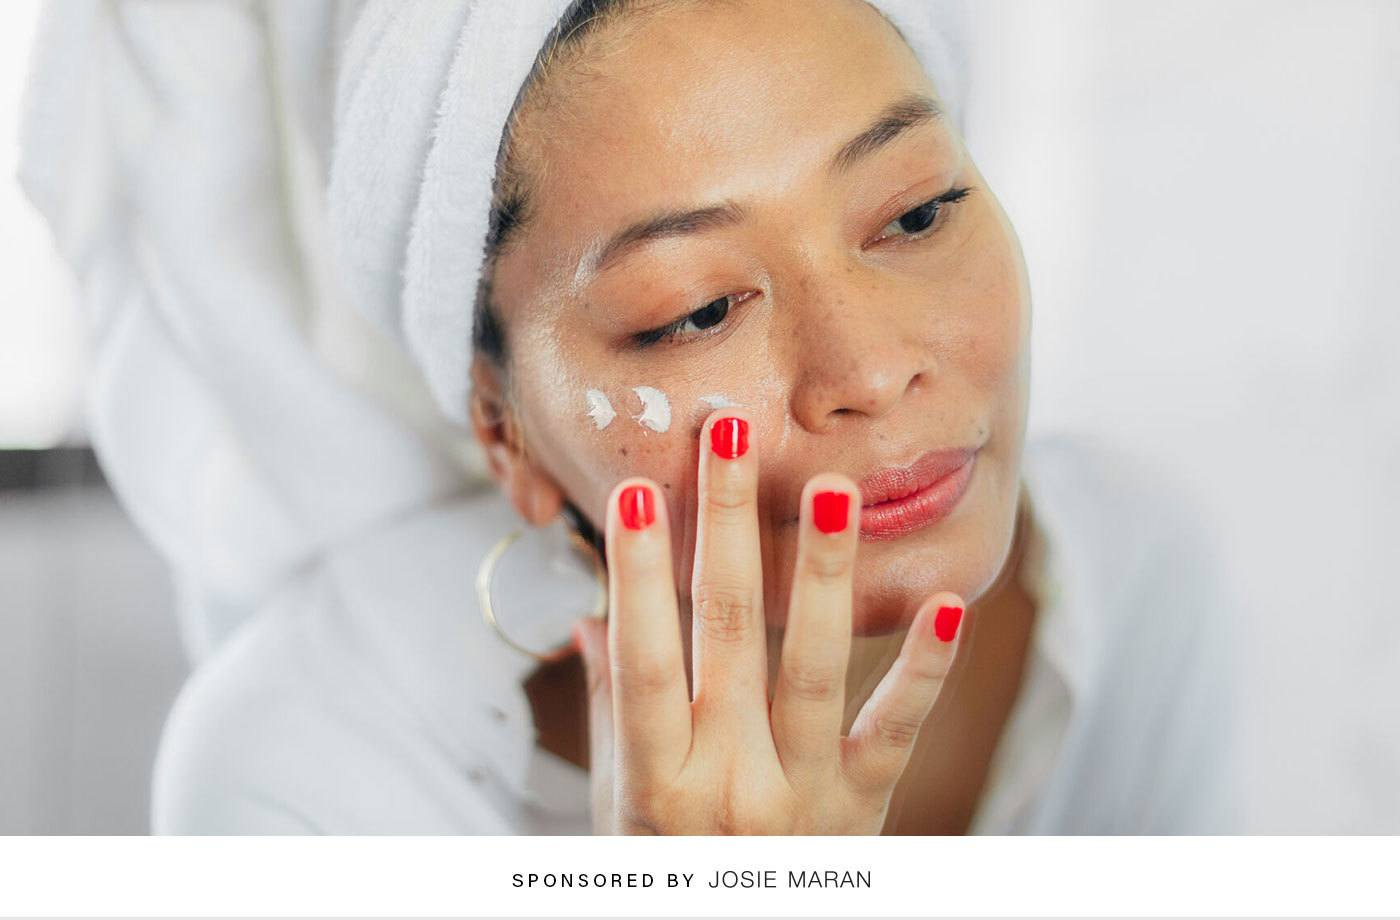 Thumbnail for 3 tips for making your skin-care routine super sustainable, according to clean-beauty maven Josie Maran